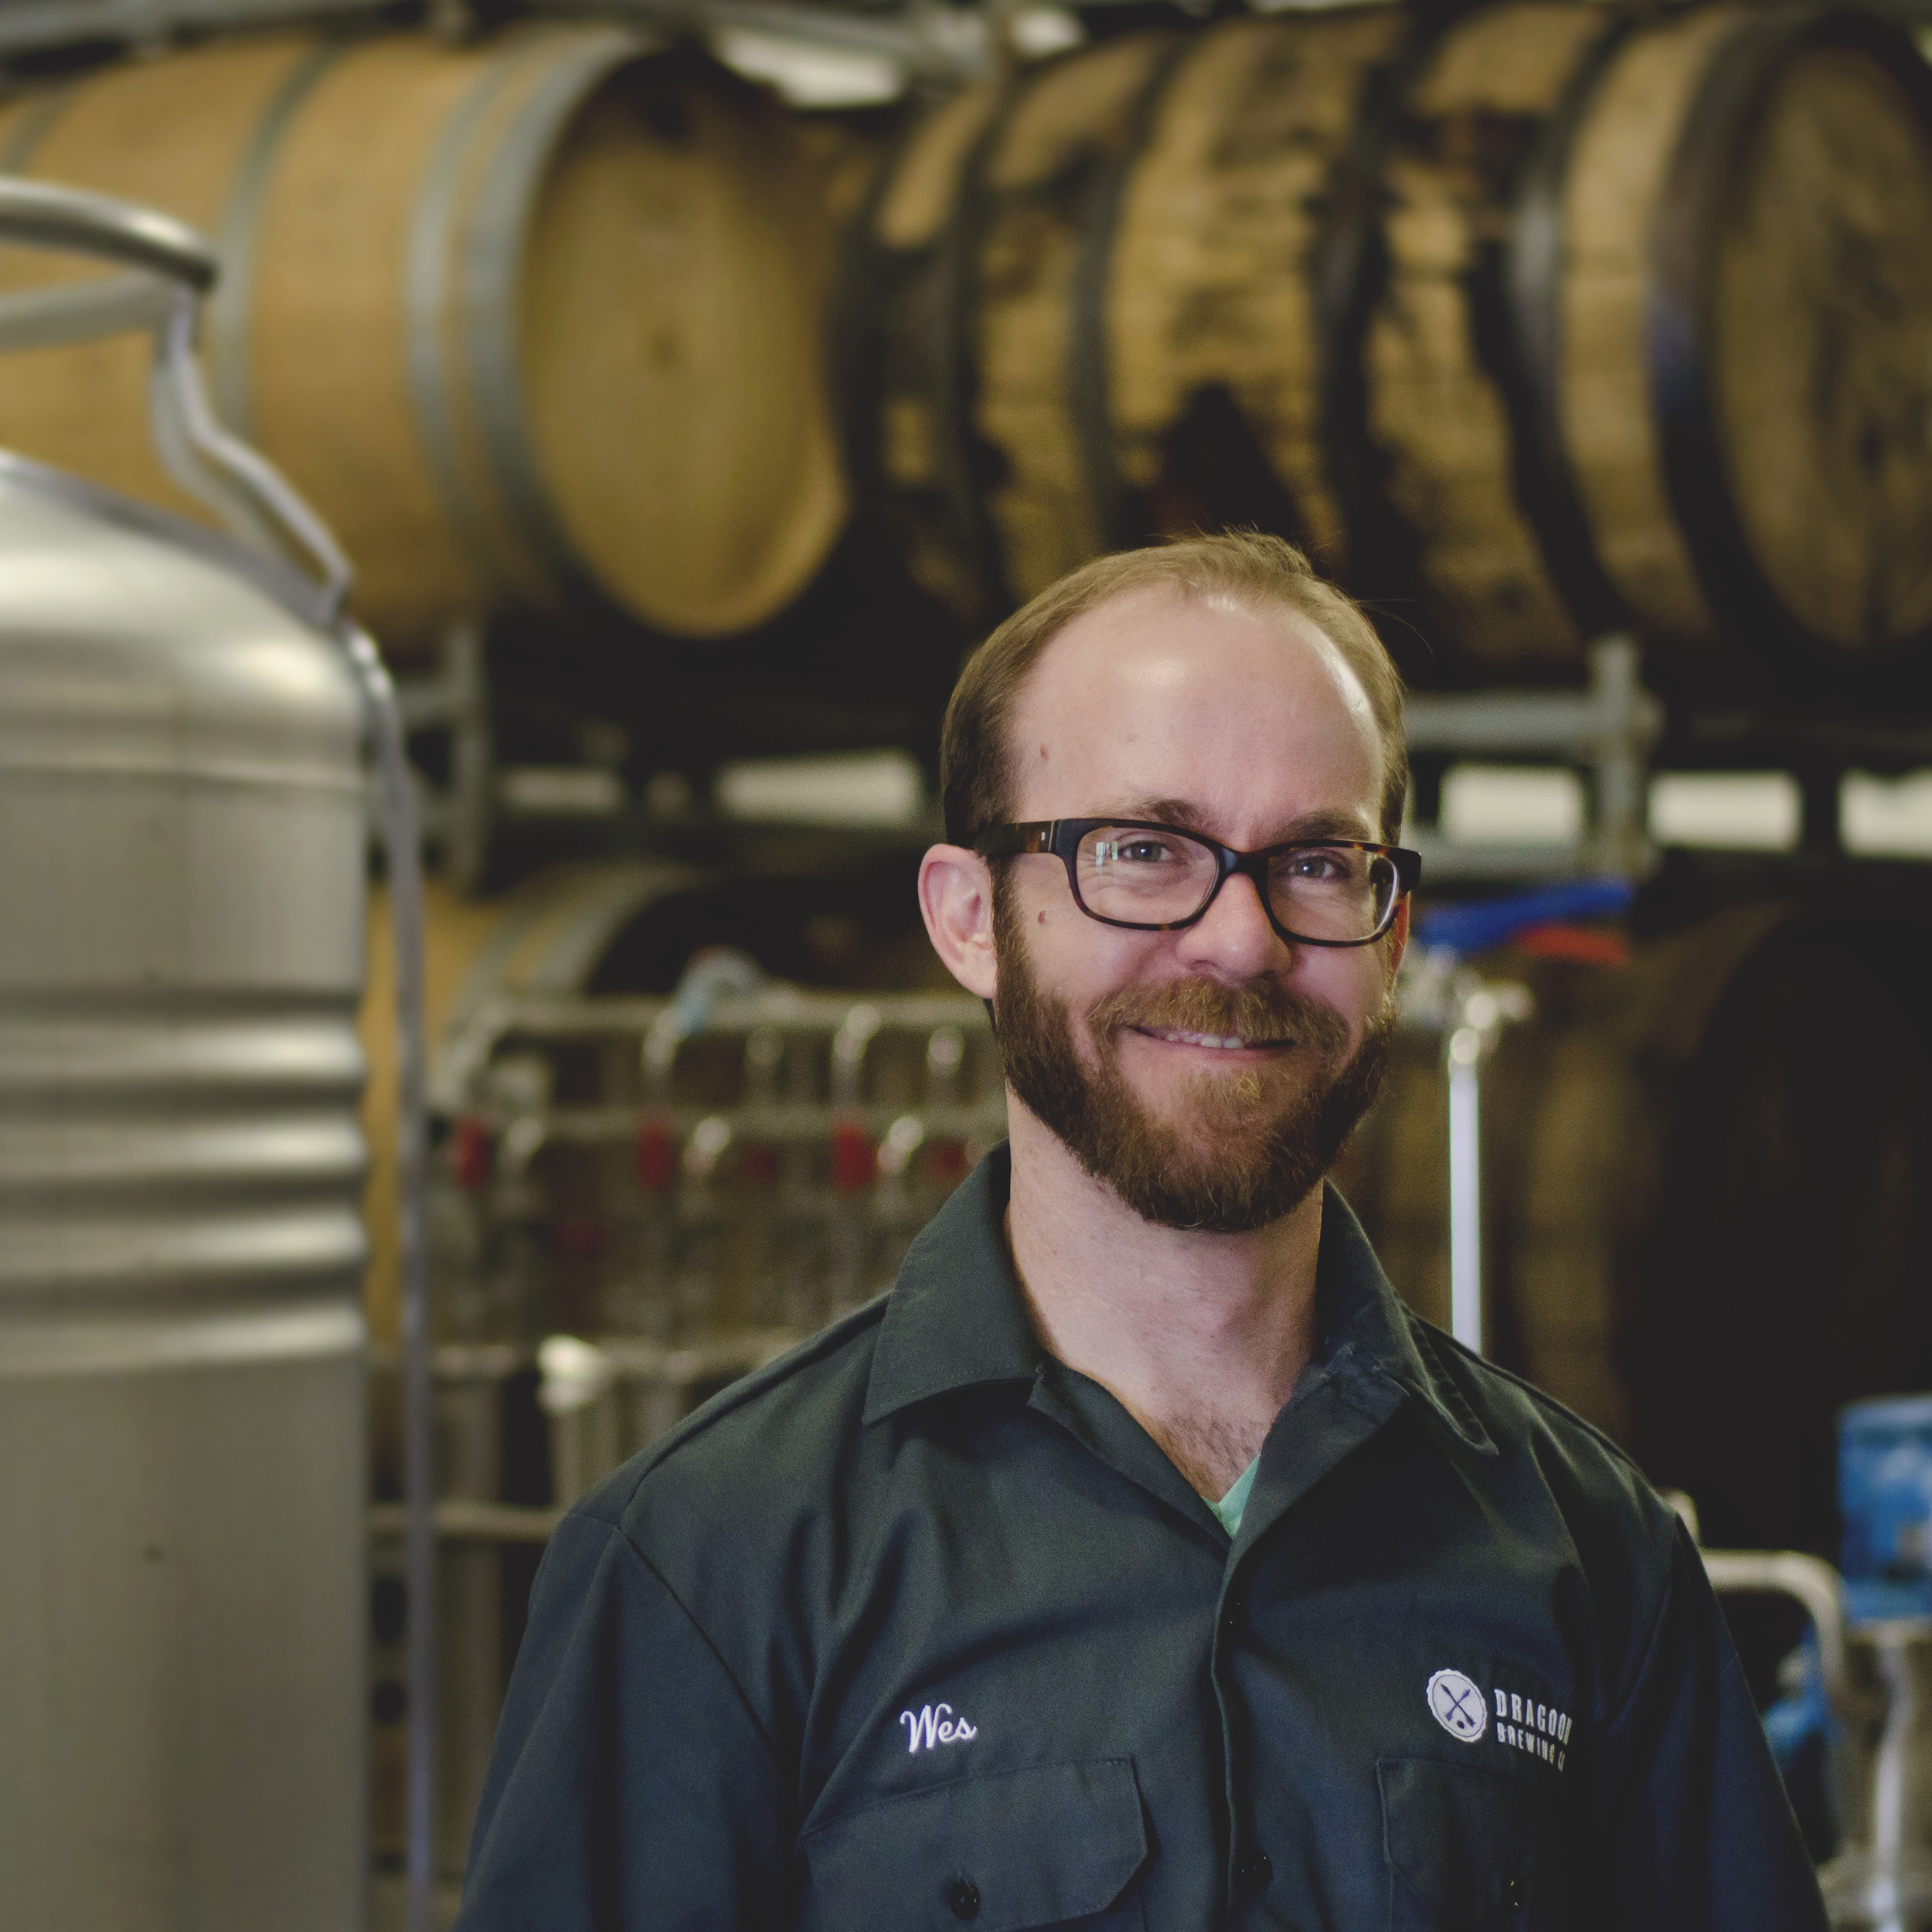 WES McCANSE   PRODUCTION MANAGER  Wes schedules our brews and filter runs, orders our raw materials, and fills in quite often in the brewhouse and cellar. You could say he juggles a lot of responsibilities.